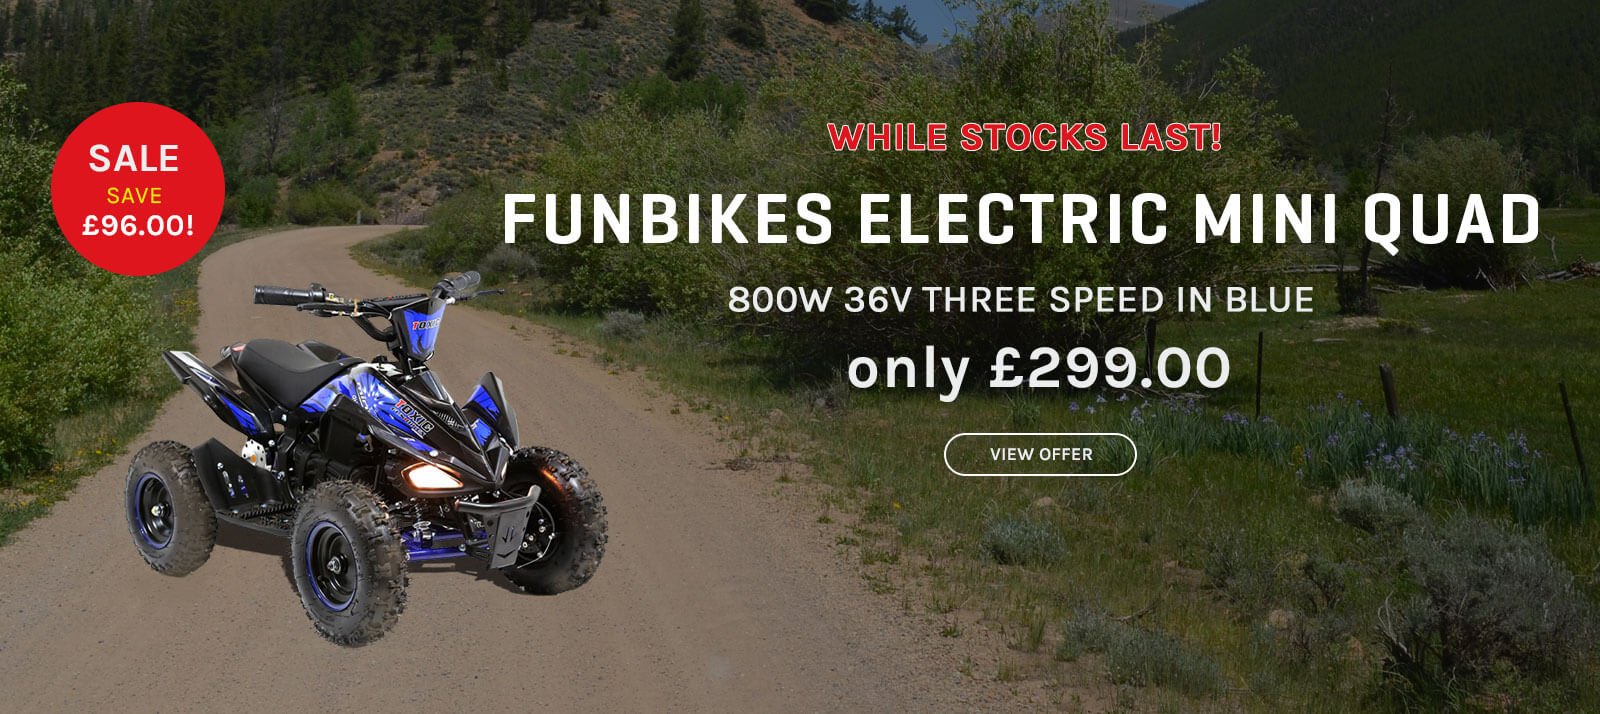 Funbikes Mini Quad Offer